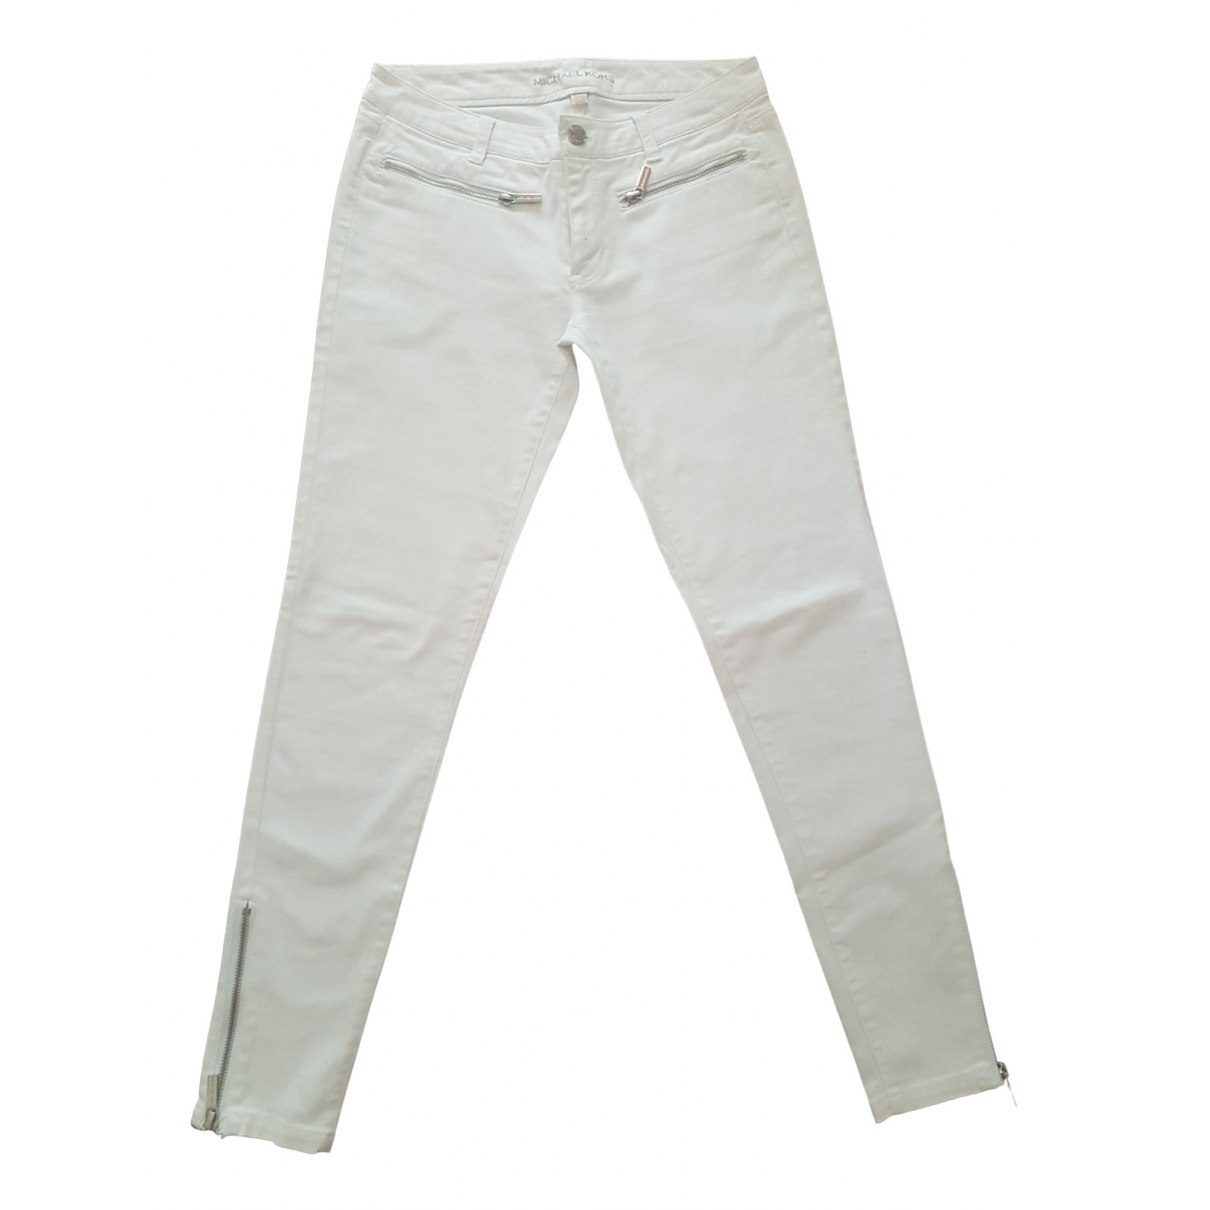 Michael Kors \N White Cotton Trousers for Women 2 US